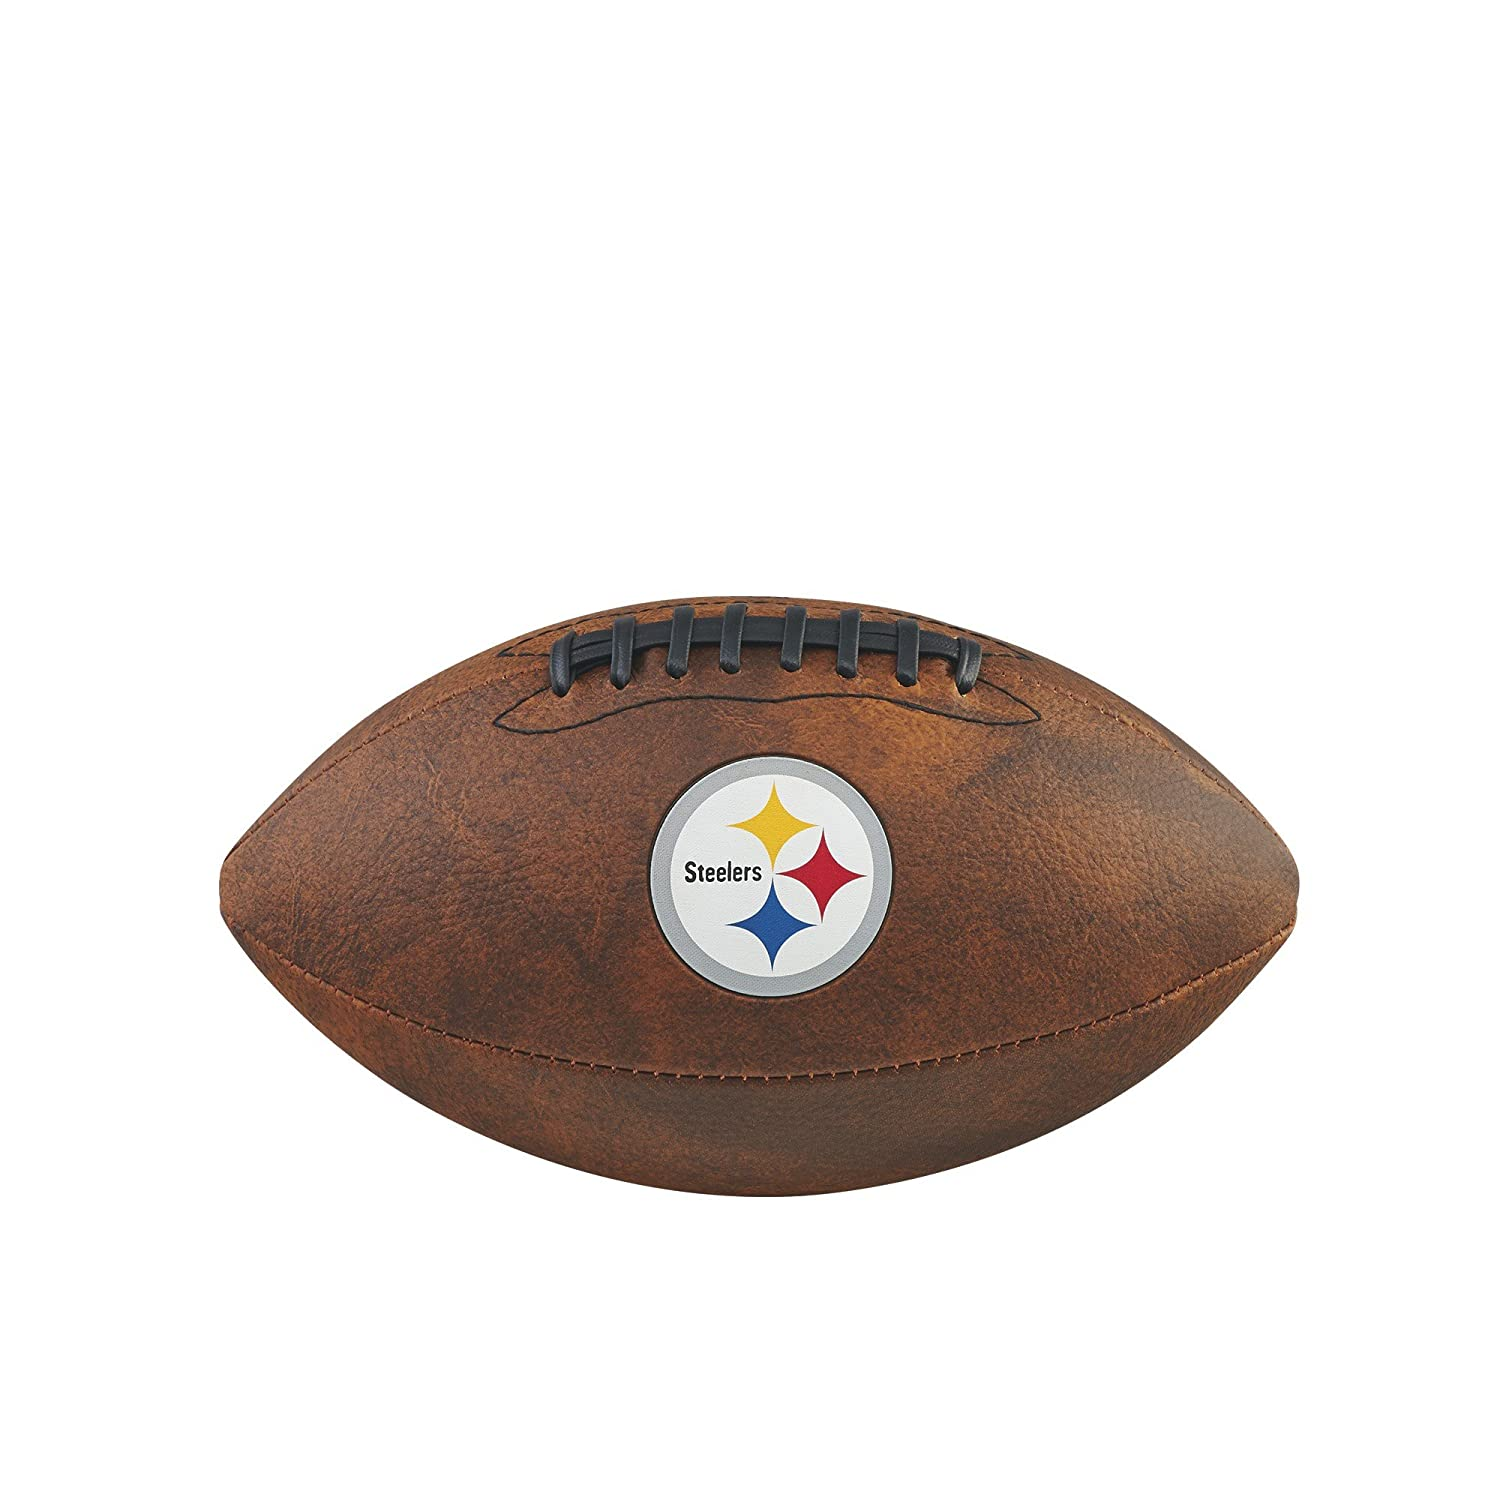 Game Master NFL Pittsburgh Steelers Junior Wilson Throwback Football, 11-Inch, Brown